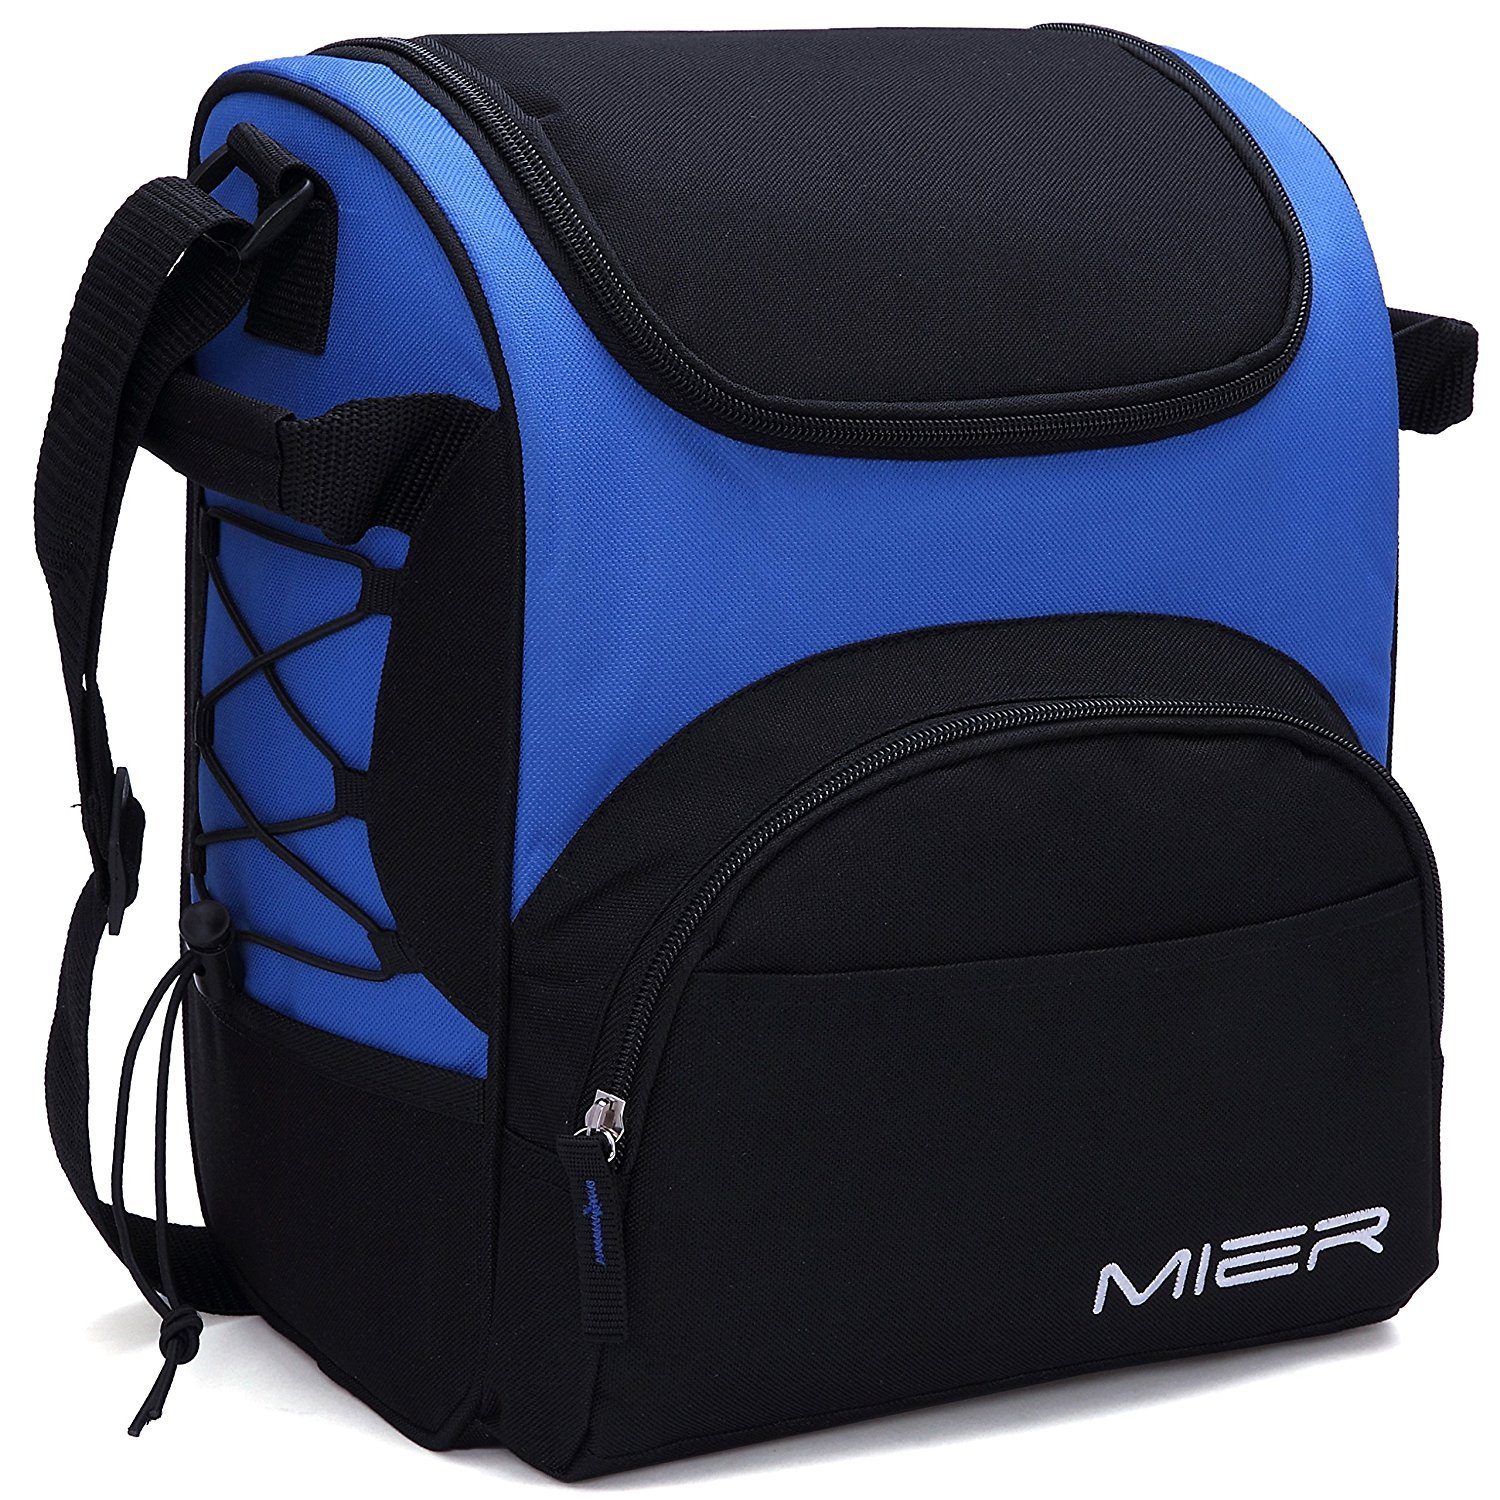 MIER Large Insulated Lunch Bag Reusable Lunch Box Picnic Cooler Bag for Men, Women, Kids, Adjustable Shoulder Strap (Blue) MP031